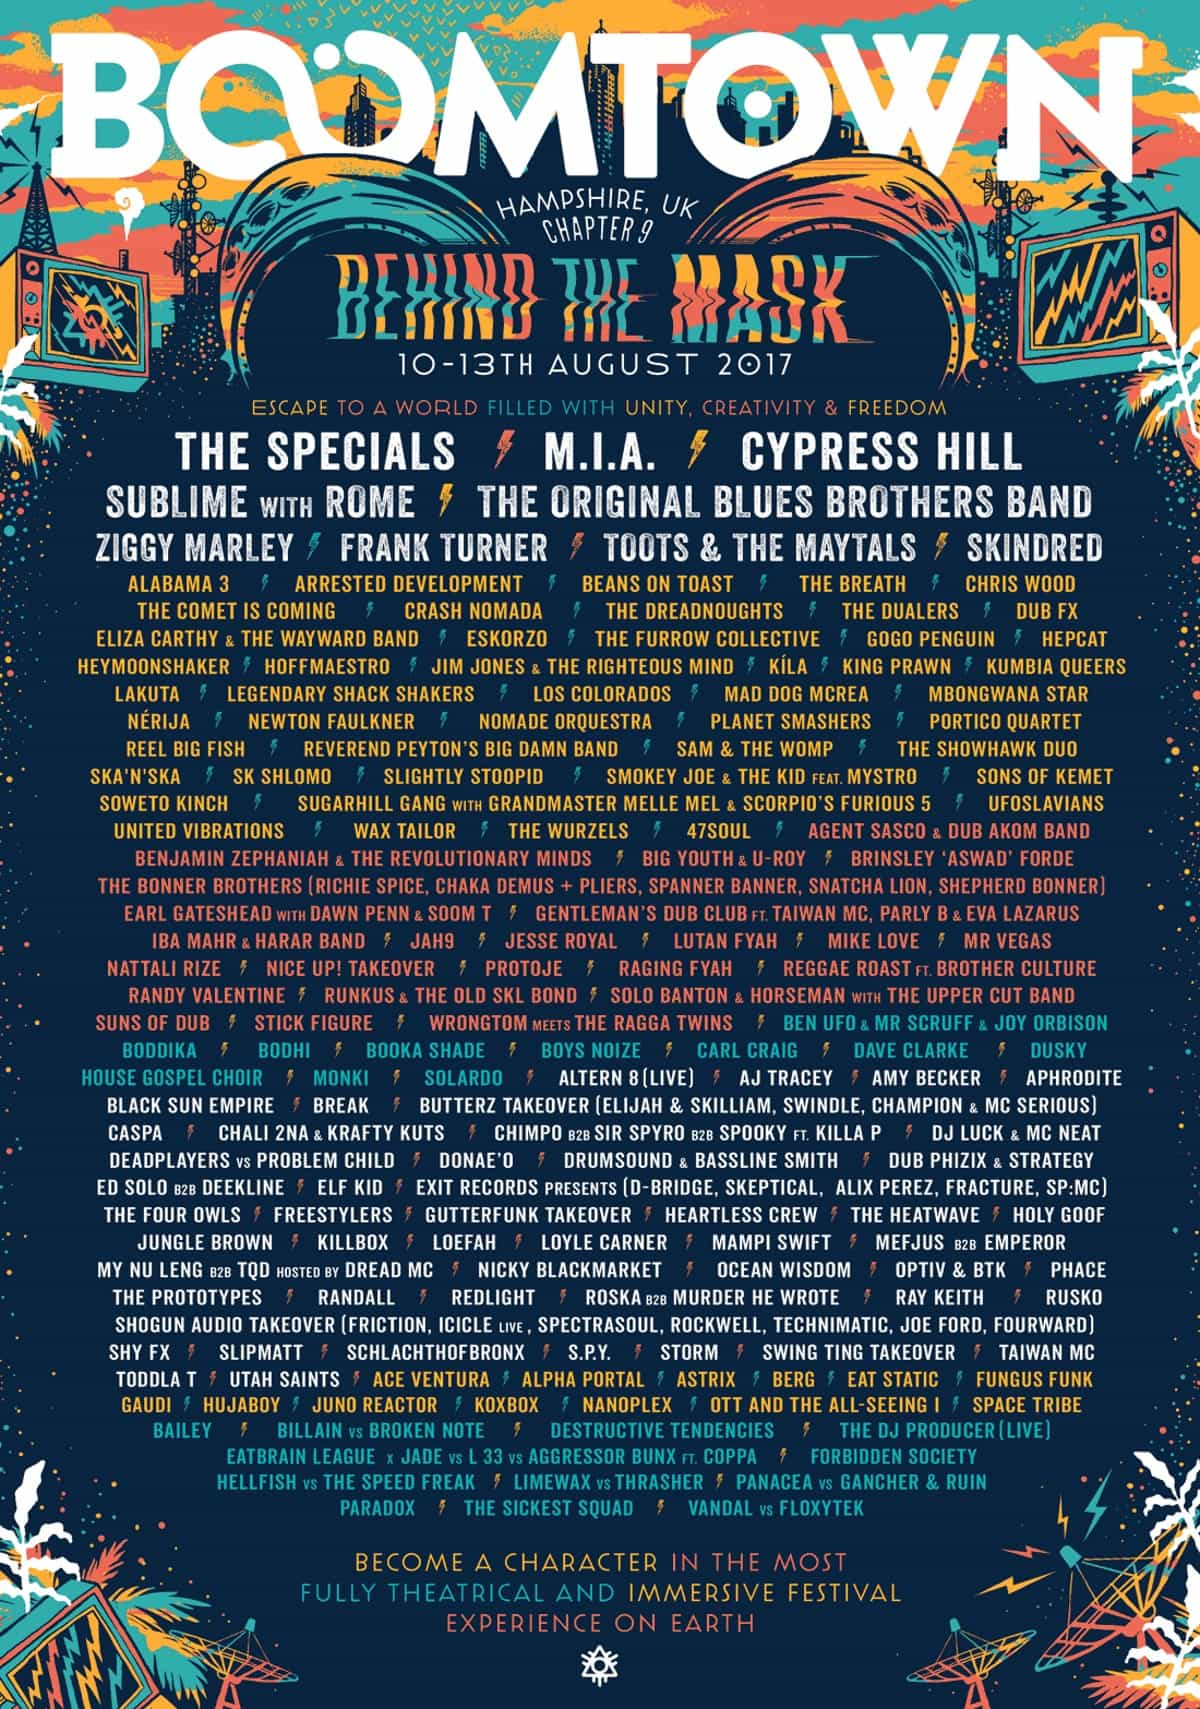 Boom Town Reveal The Specials, Cypress Hill, M.I.A for Chapter 9